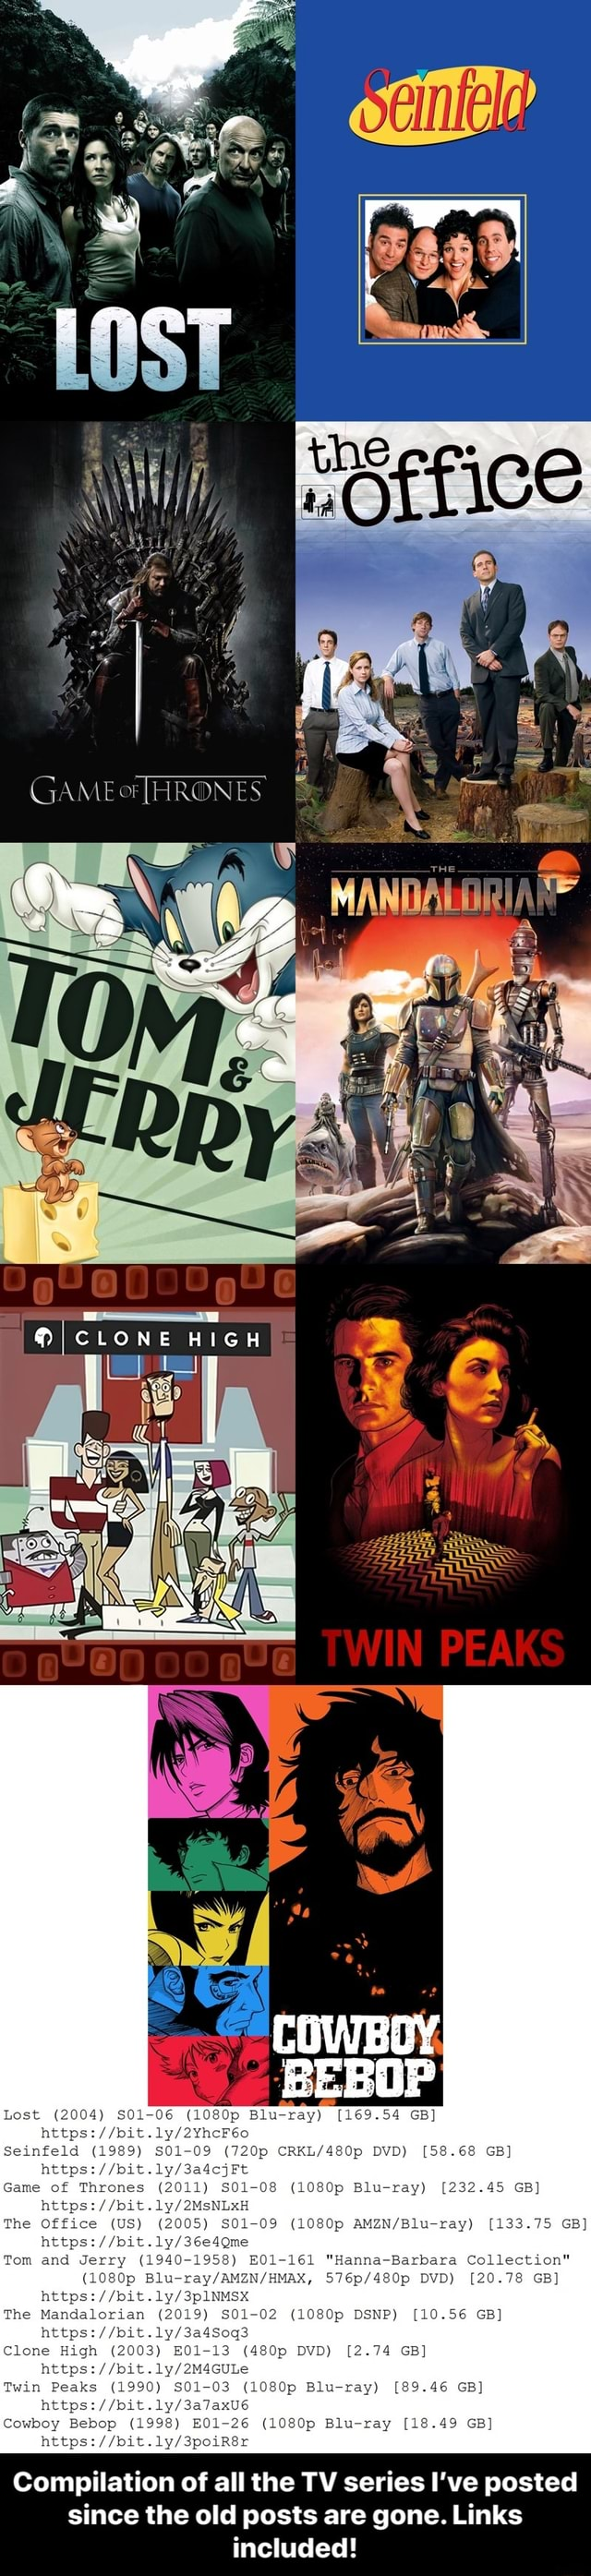 CLONE HIGH Lost 2004 S01 06 1080p Blu ray 169.54 GB https hetps ly Seinfeld 1989 S01 09 720p DVD 58.68 GB Game of Thrones 2011 S01 08 1080p Blu ray 232.45 GB The Office US 2005 S01 09 1080p 133.75 GB Tom and Jerry 1940 1958 E01 161 Hanna Barbara Collection 1080p DVD 20.78 GB https bit. bit. The Mandalorian 2019 S01 02 1080p DSNP 10.56 GB https Clone High 2003 E01 13 480p DVD 2.74 GB Twin Peaks 1 Op Blu ray 89.46 GB Cowboy Bebop 1998 E01 26 {1080p Blu ray 18.49 GB Compilation of all the TV series I've posted since the old posts are gone. Links included Compilation of all the TV series I've posted since the old posts are gone. Links included memes